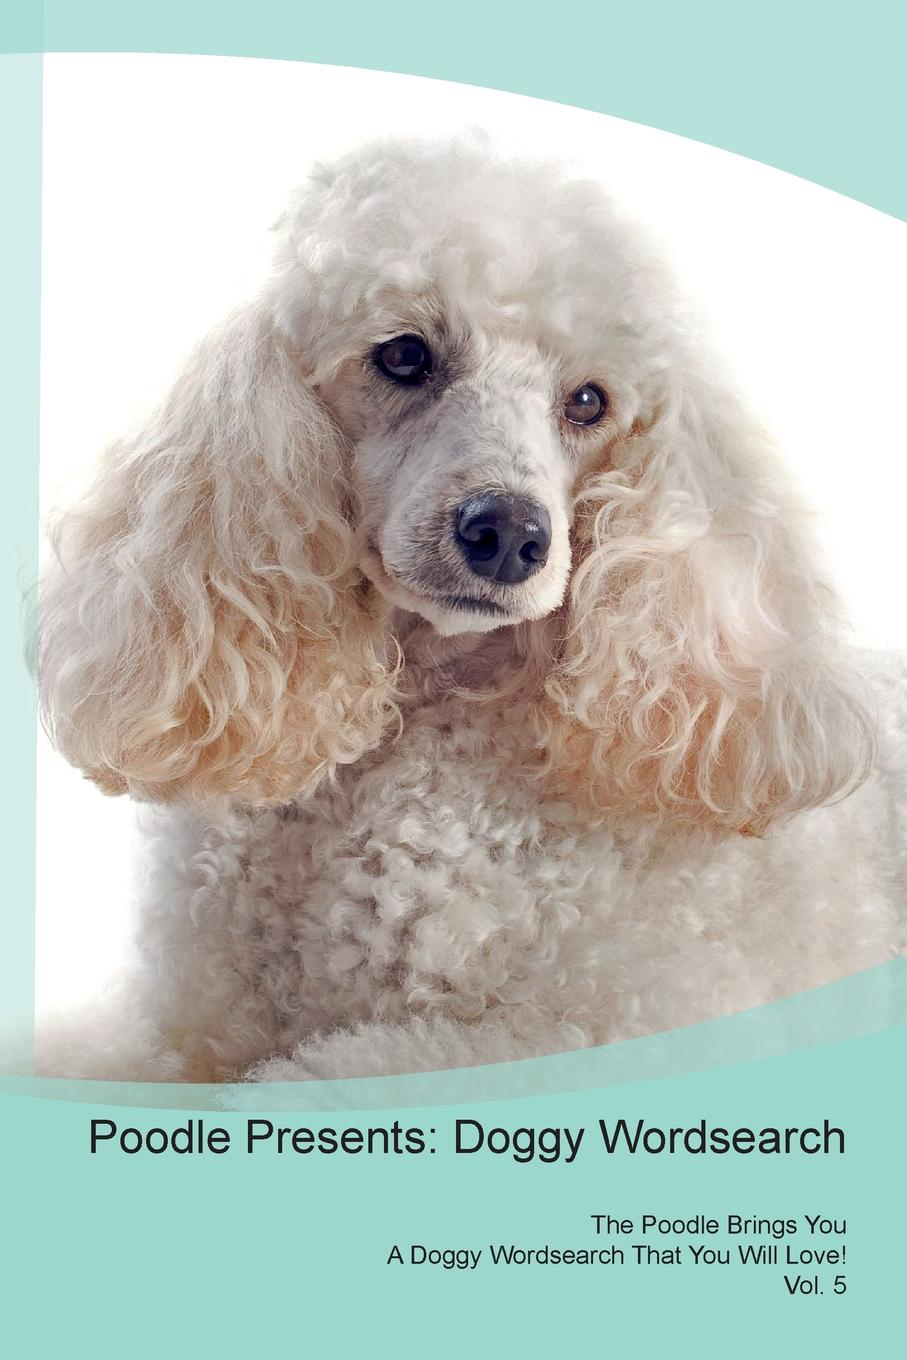 Doggy Puzzles Poodle Presents. Wordsearch The Brings You A That Will Love! Vol. 5